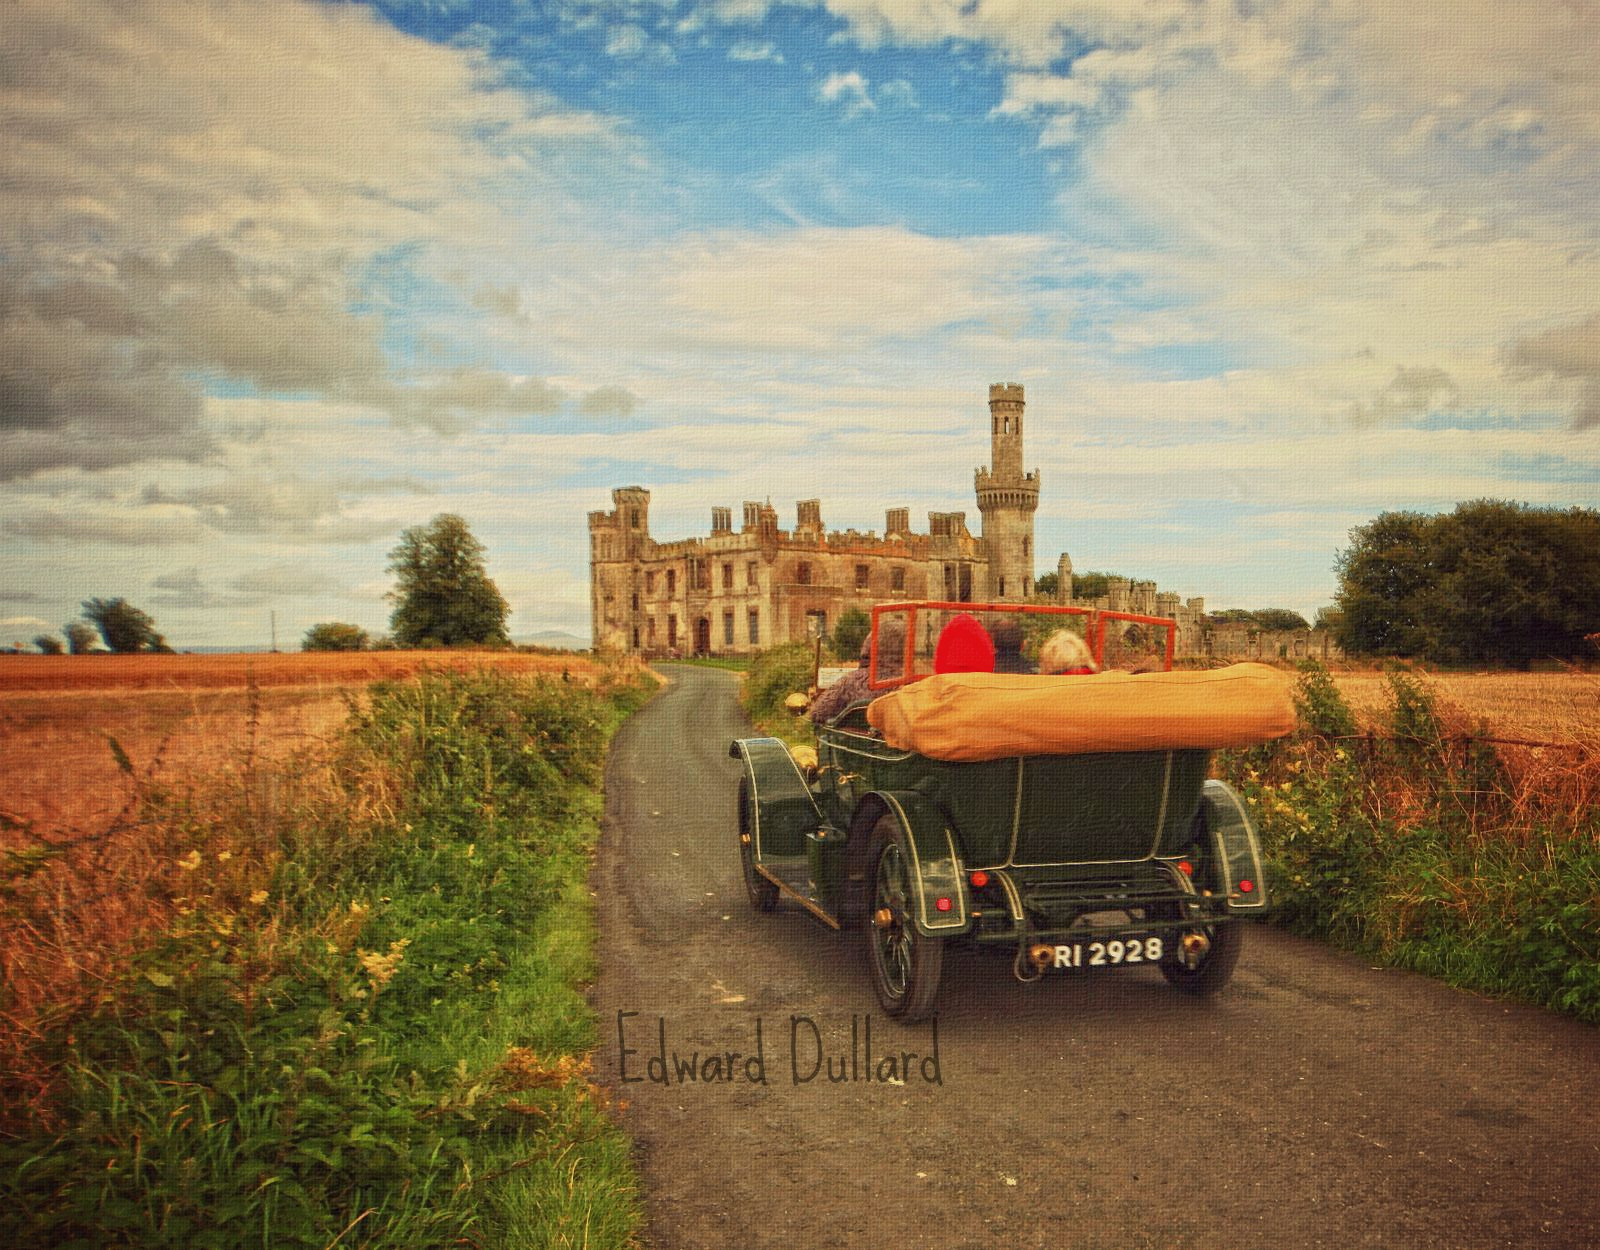 Photograph Motoring their way to Duckett's grove castle.  by Edward Dullard on 500px